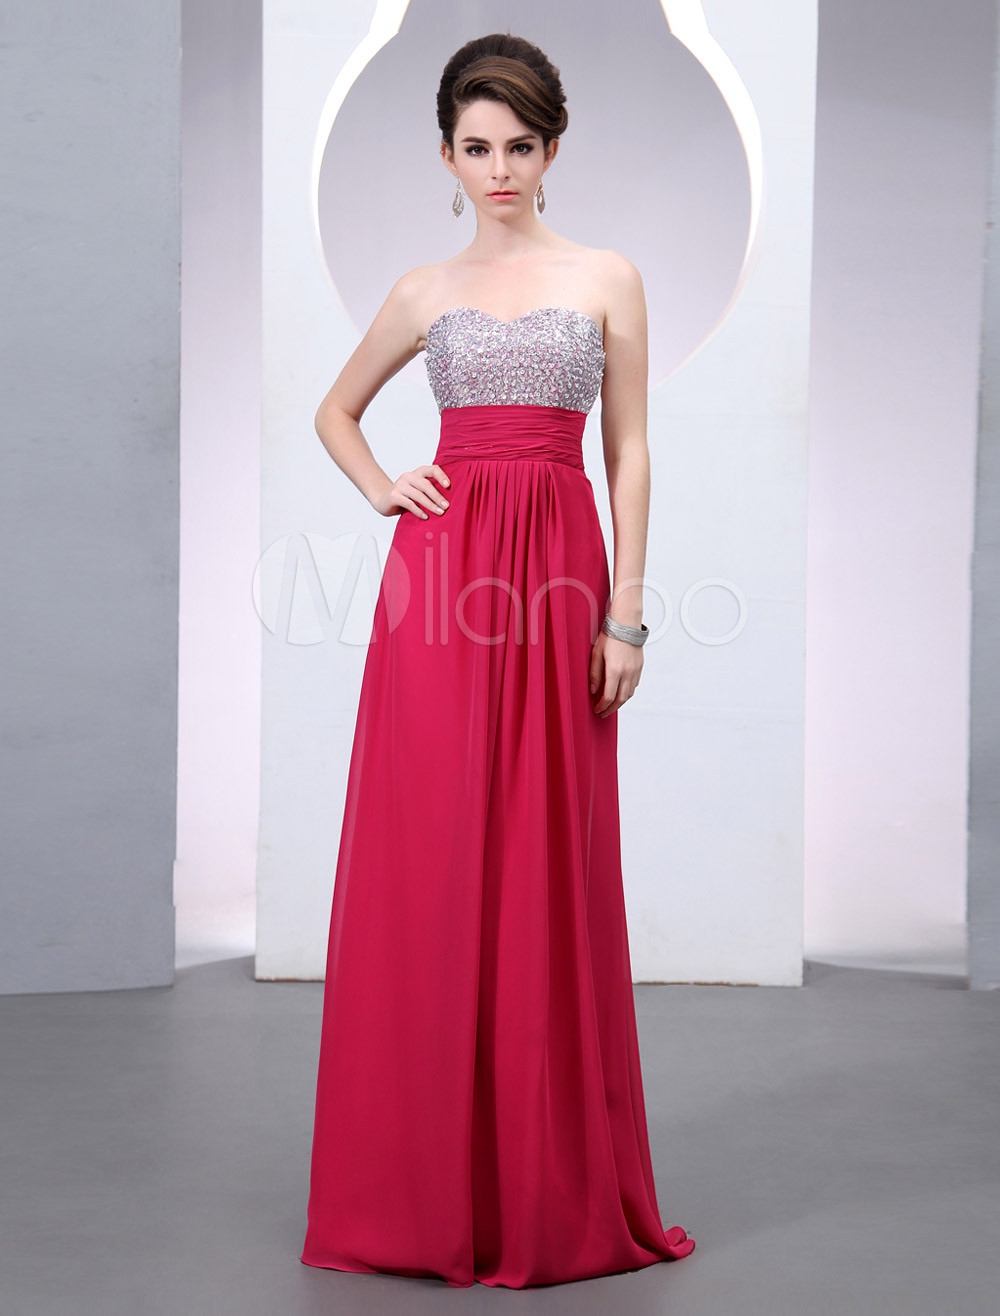 Glamour Sweetheart Neck Sleeveless Sequin A-line Chiffon Prom Dress